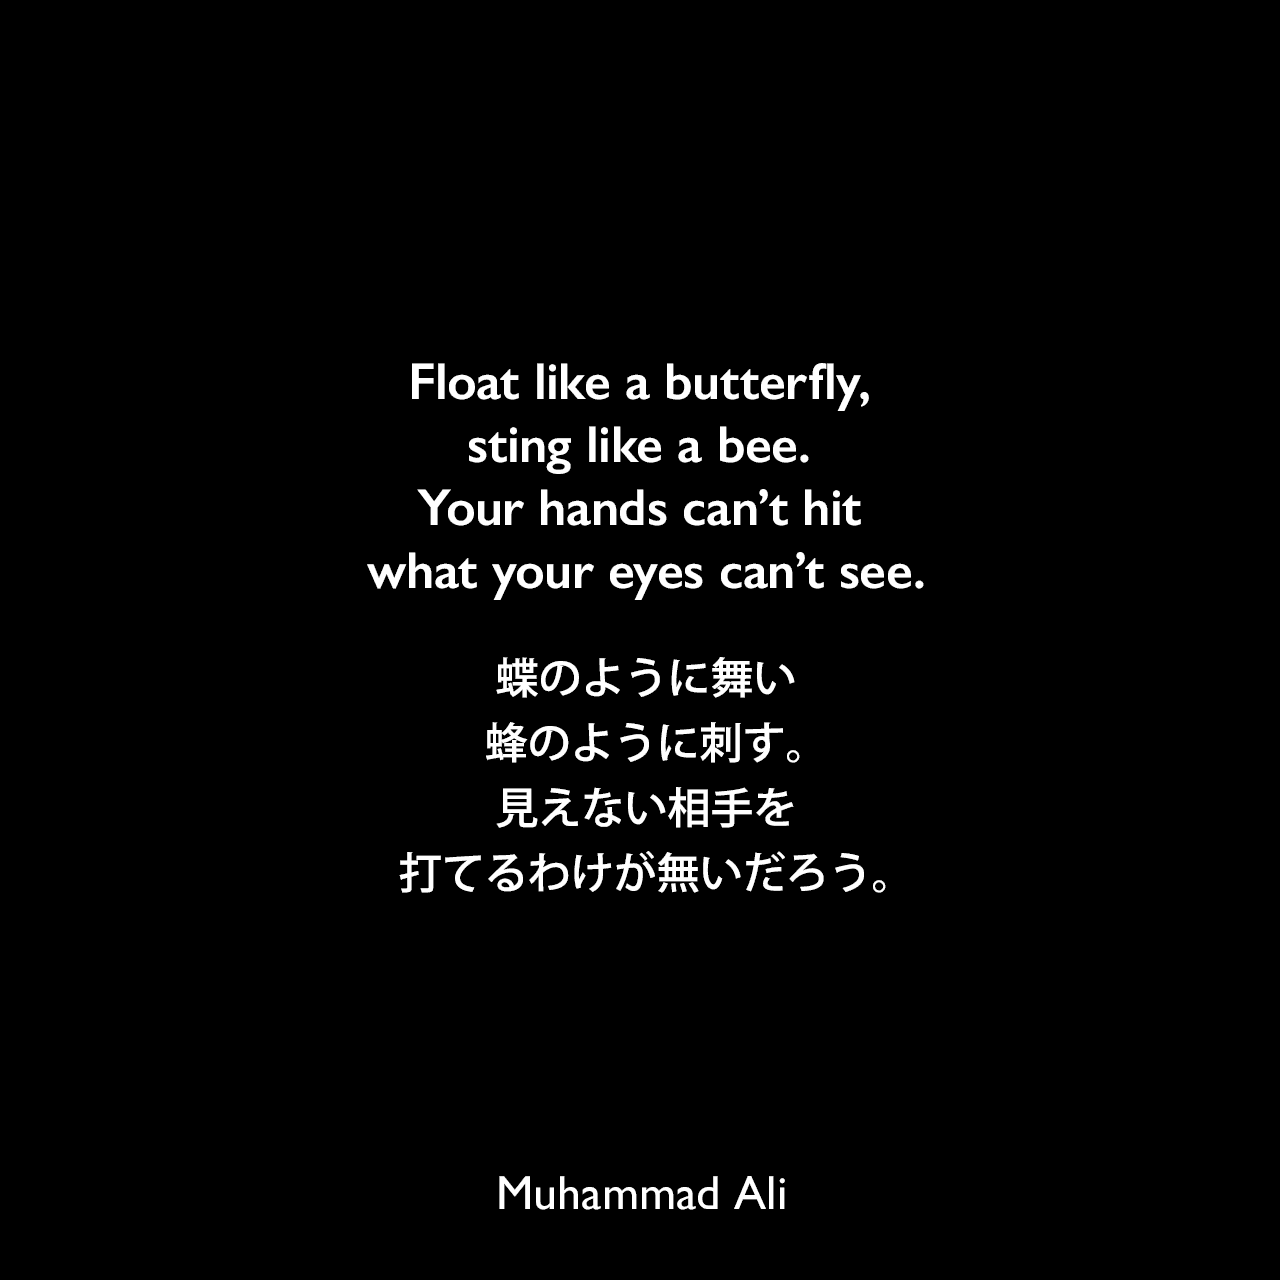 Float like a butterfly, sting like a bee. Your hands can't hit what your eyes can't see.蝶のように舞い、蜂のように刺す。見えない相手を打てるわけが無いだろう。Muhammad Ali